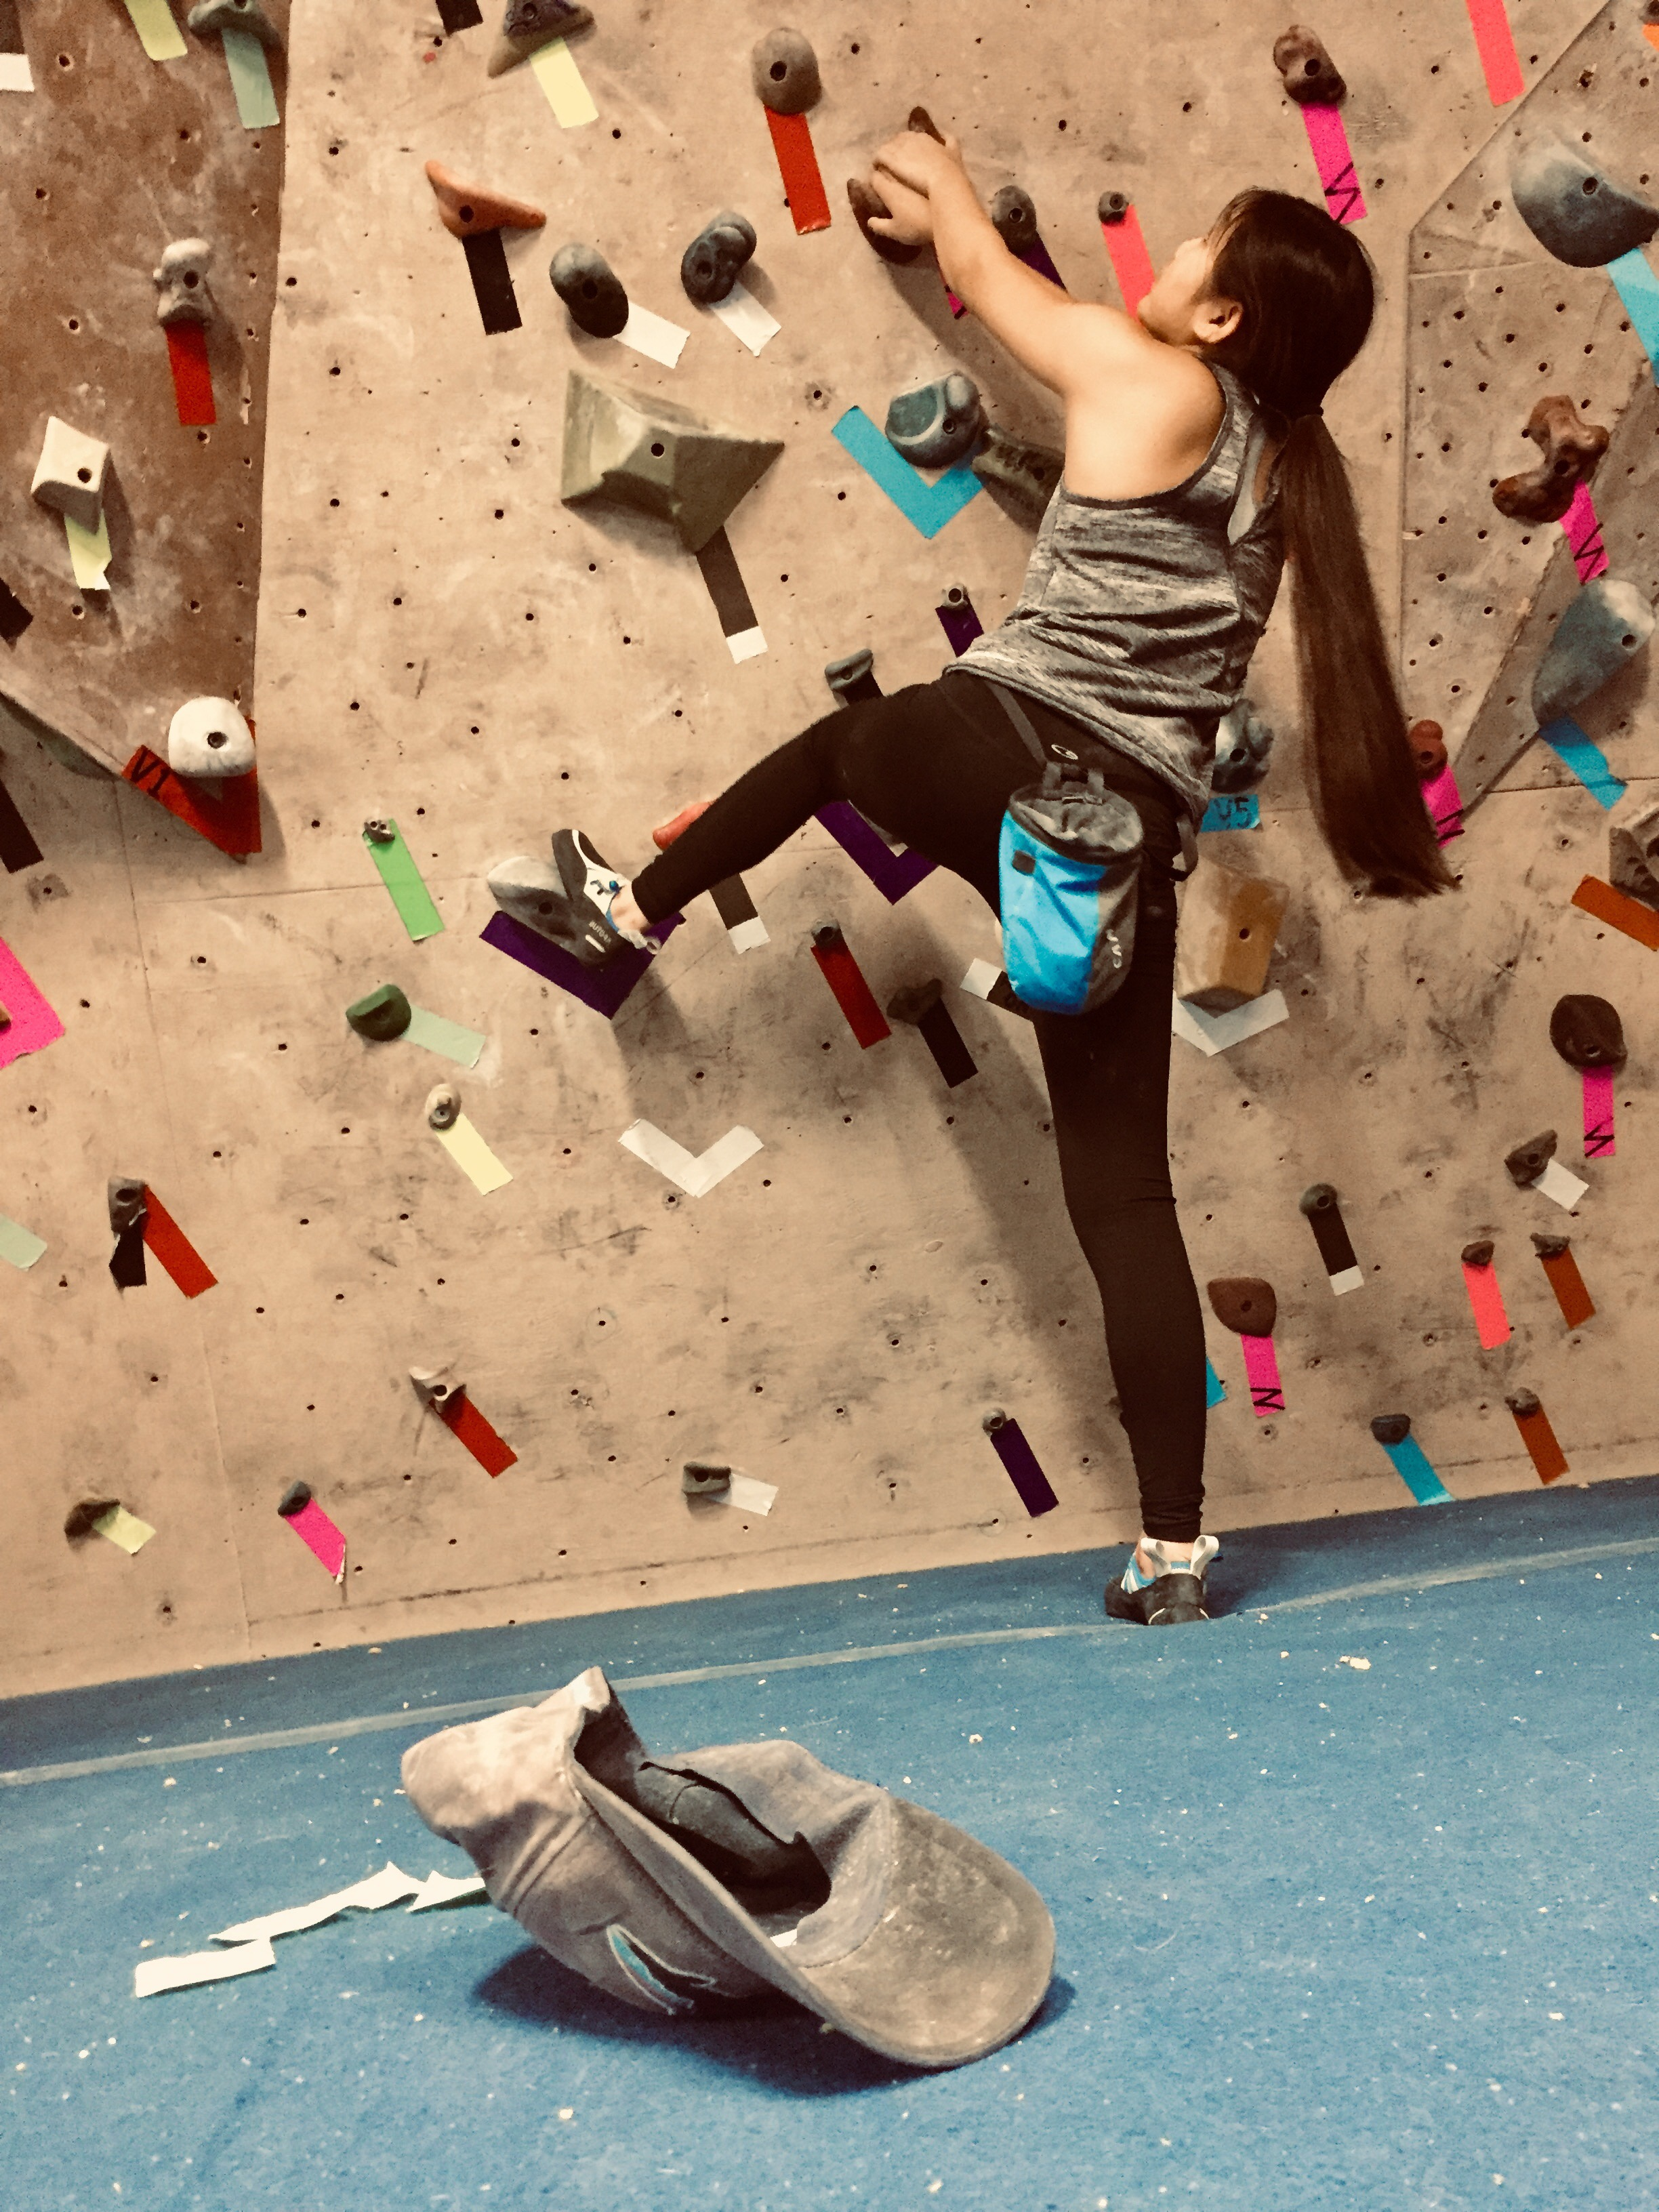 Female Climber Starting An Indoor Bouldering Route